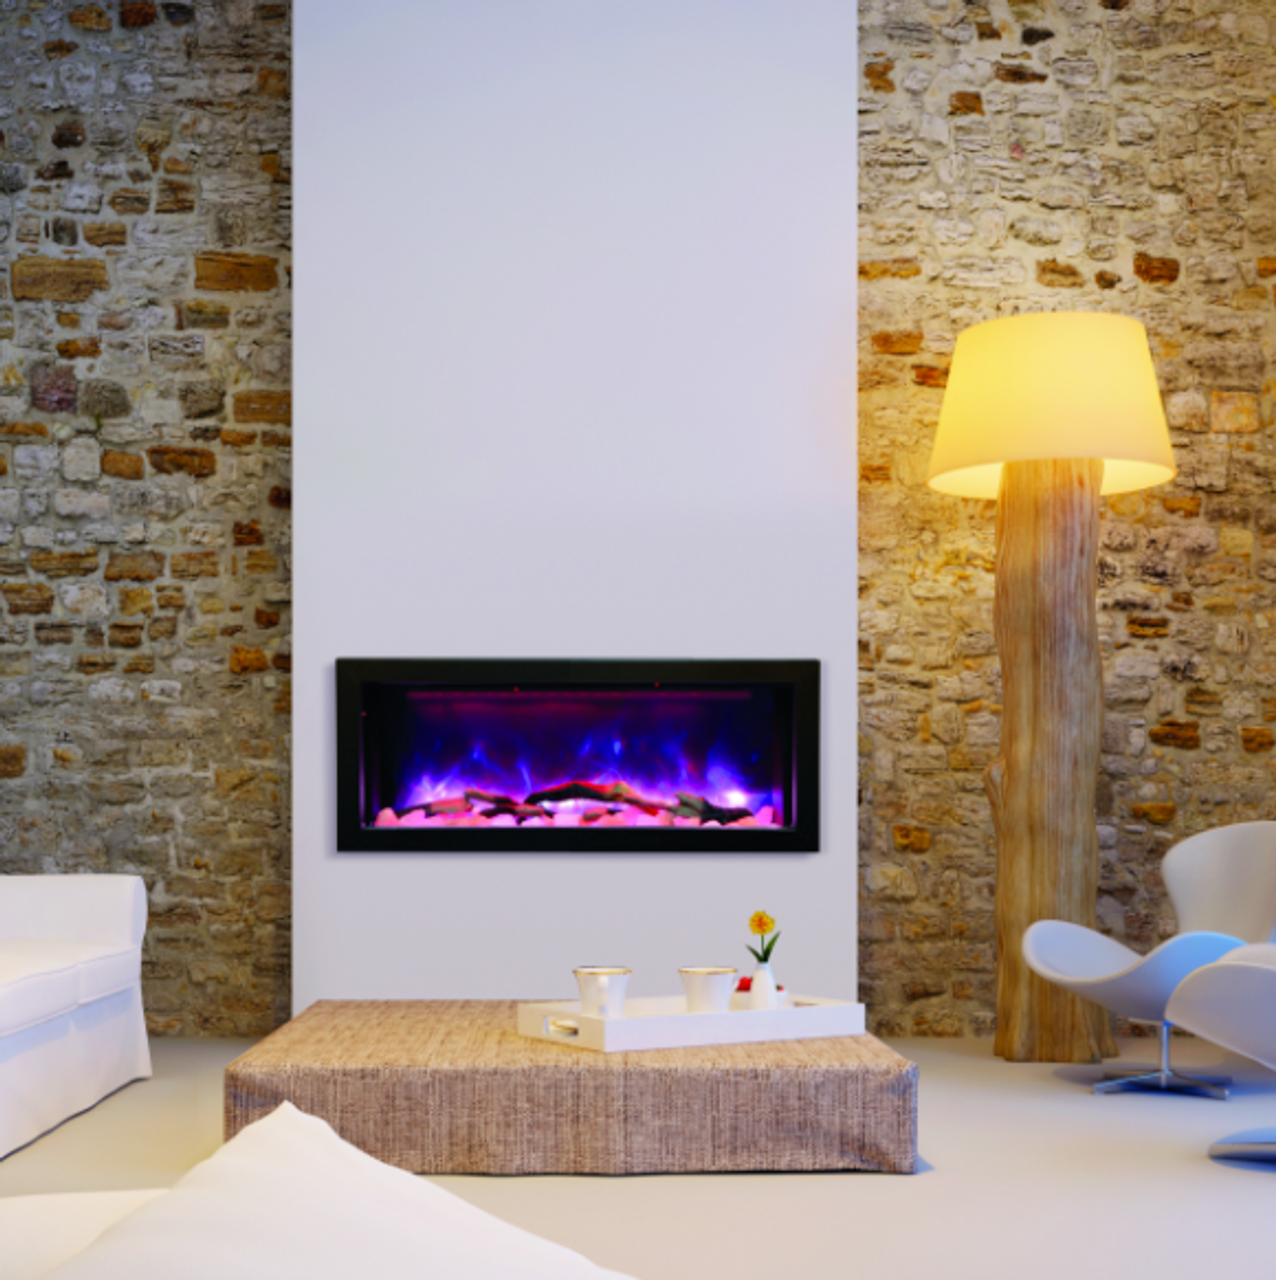 """BI-40 Deep Panorama Amantii Electric Fireplace. Our units give you multiple length and depth options as well as giving you the ability to install your fireplace with your choice of finishing material built right to the glass for a """"clean face"""" design or using the provided black metal surround."""